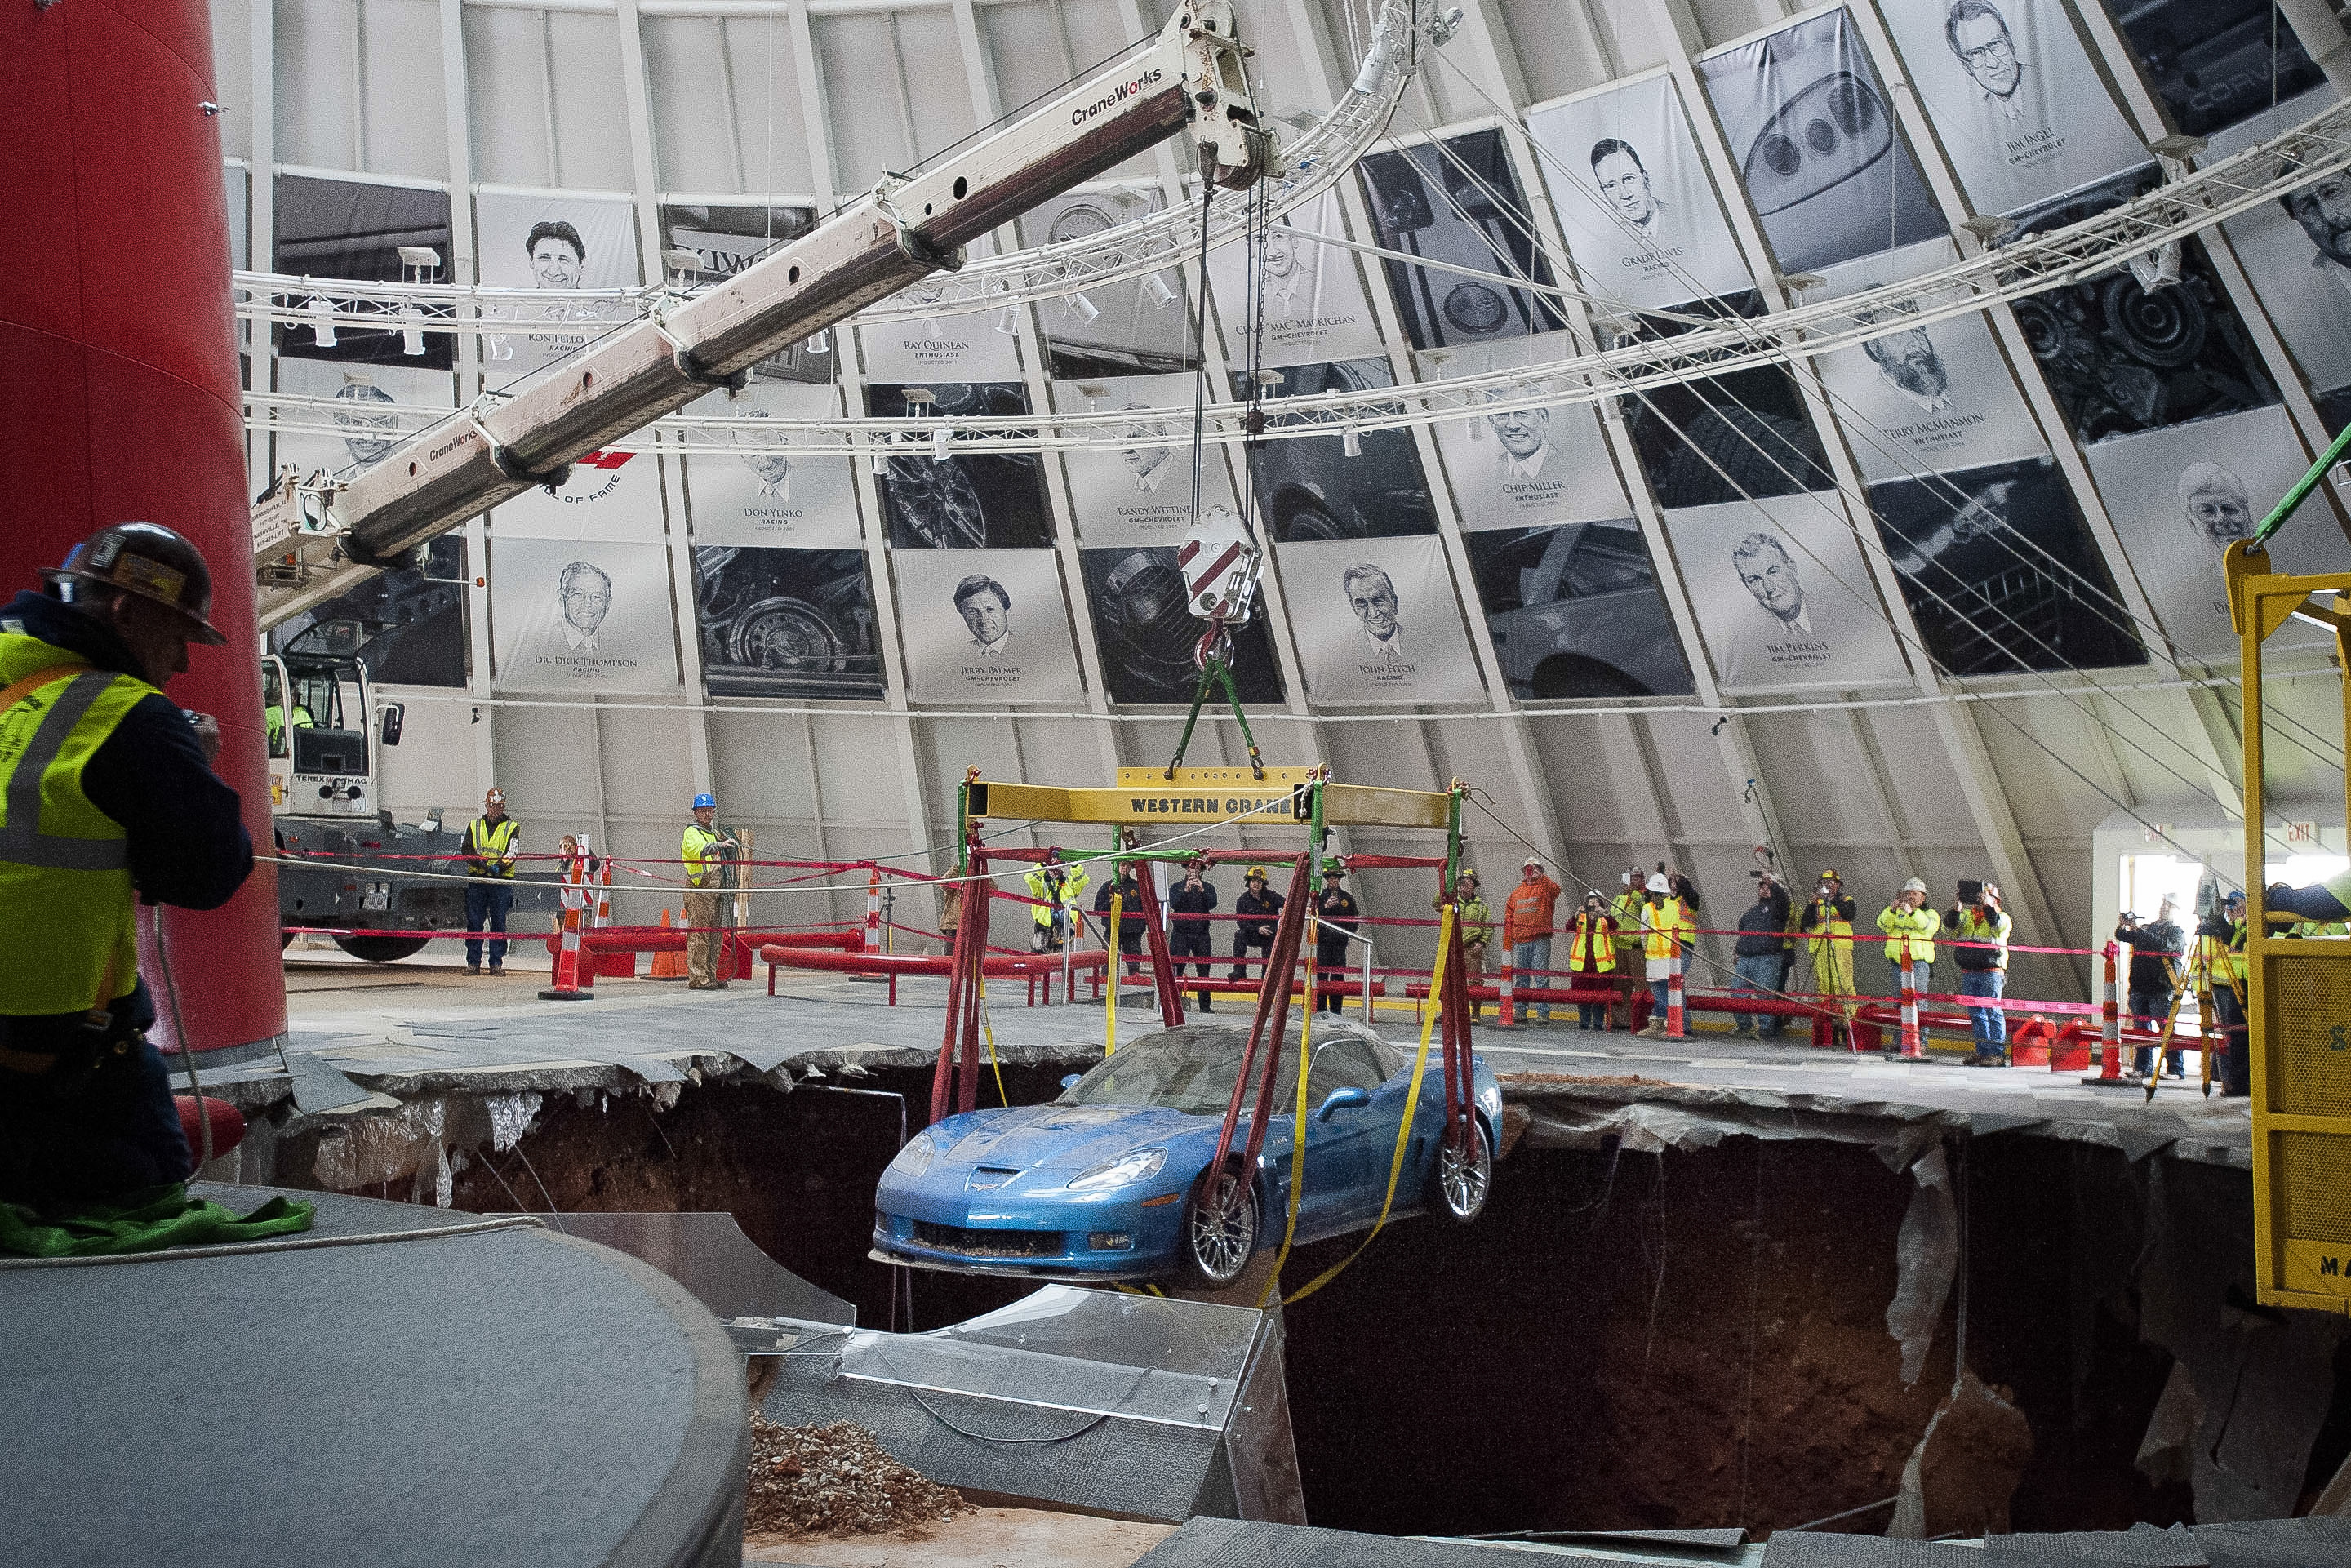 One of eight Chevrolet Corvettes is removed from a sinkhole in the Skydome at the National Corvette Museum, Monday, March. 3, 2014, in Bowling Green, Ky.  On Feb. 12 2014, a large sinkhole swallowed eight prized cars, piling them in a heap amid loose dirt and concrete fragments.